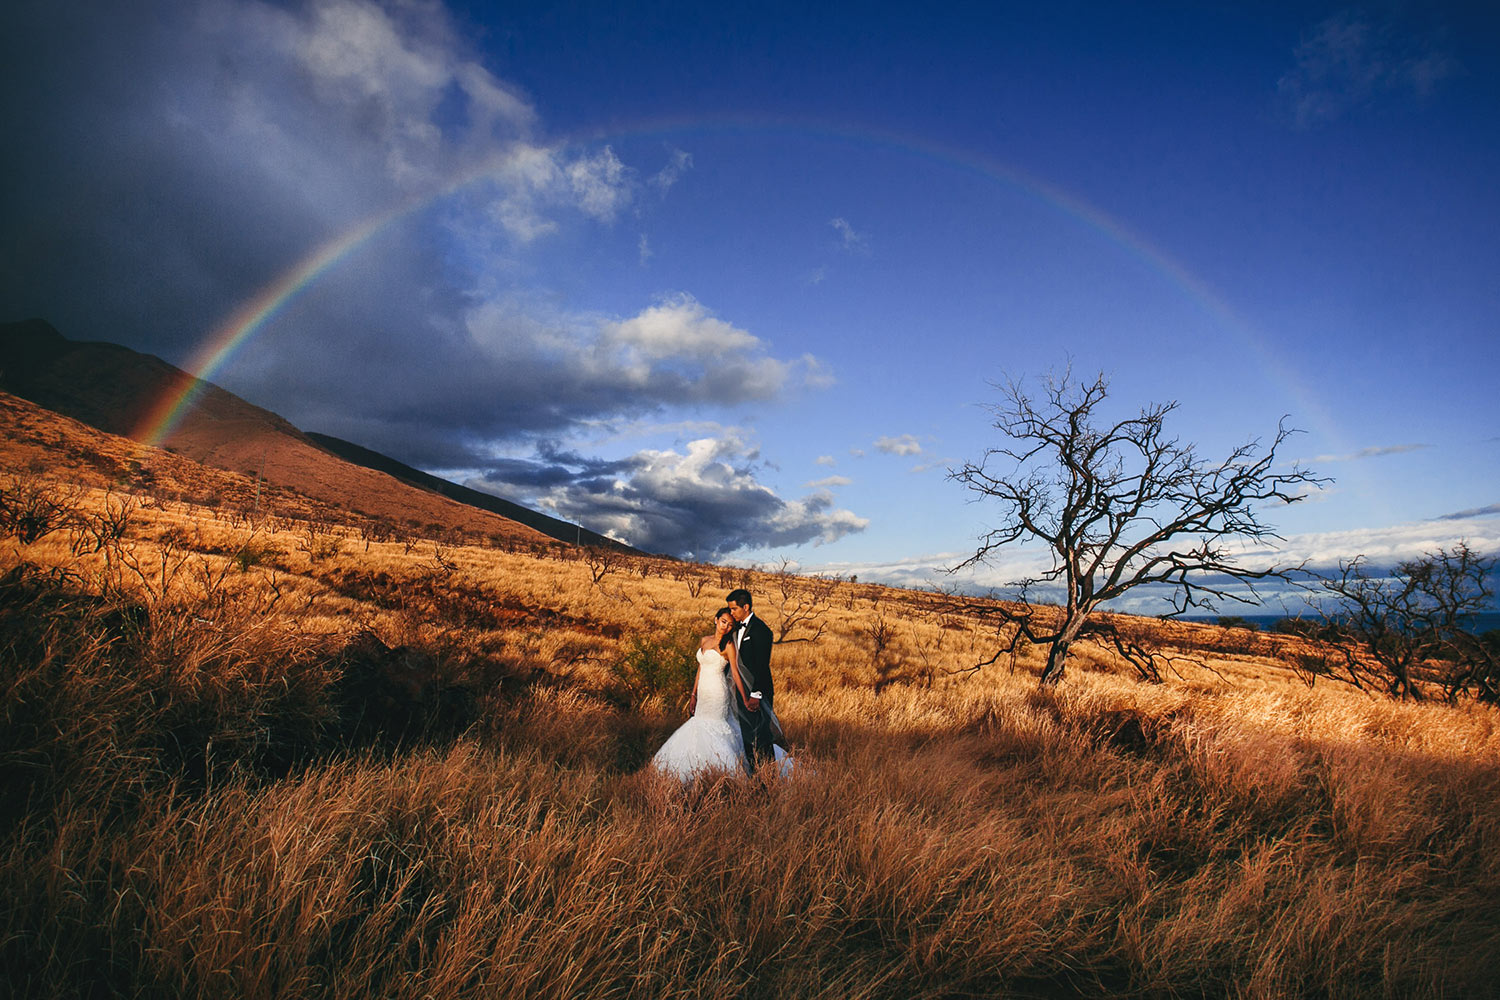 Epic photo of bride and groom in golden field of grass against blue sky and rainbow, by Callaway Gable